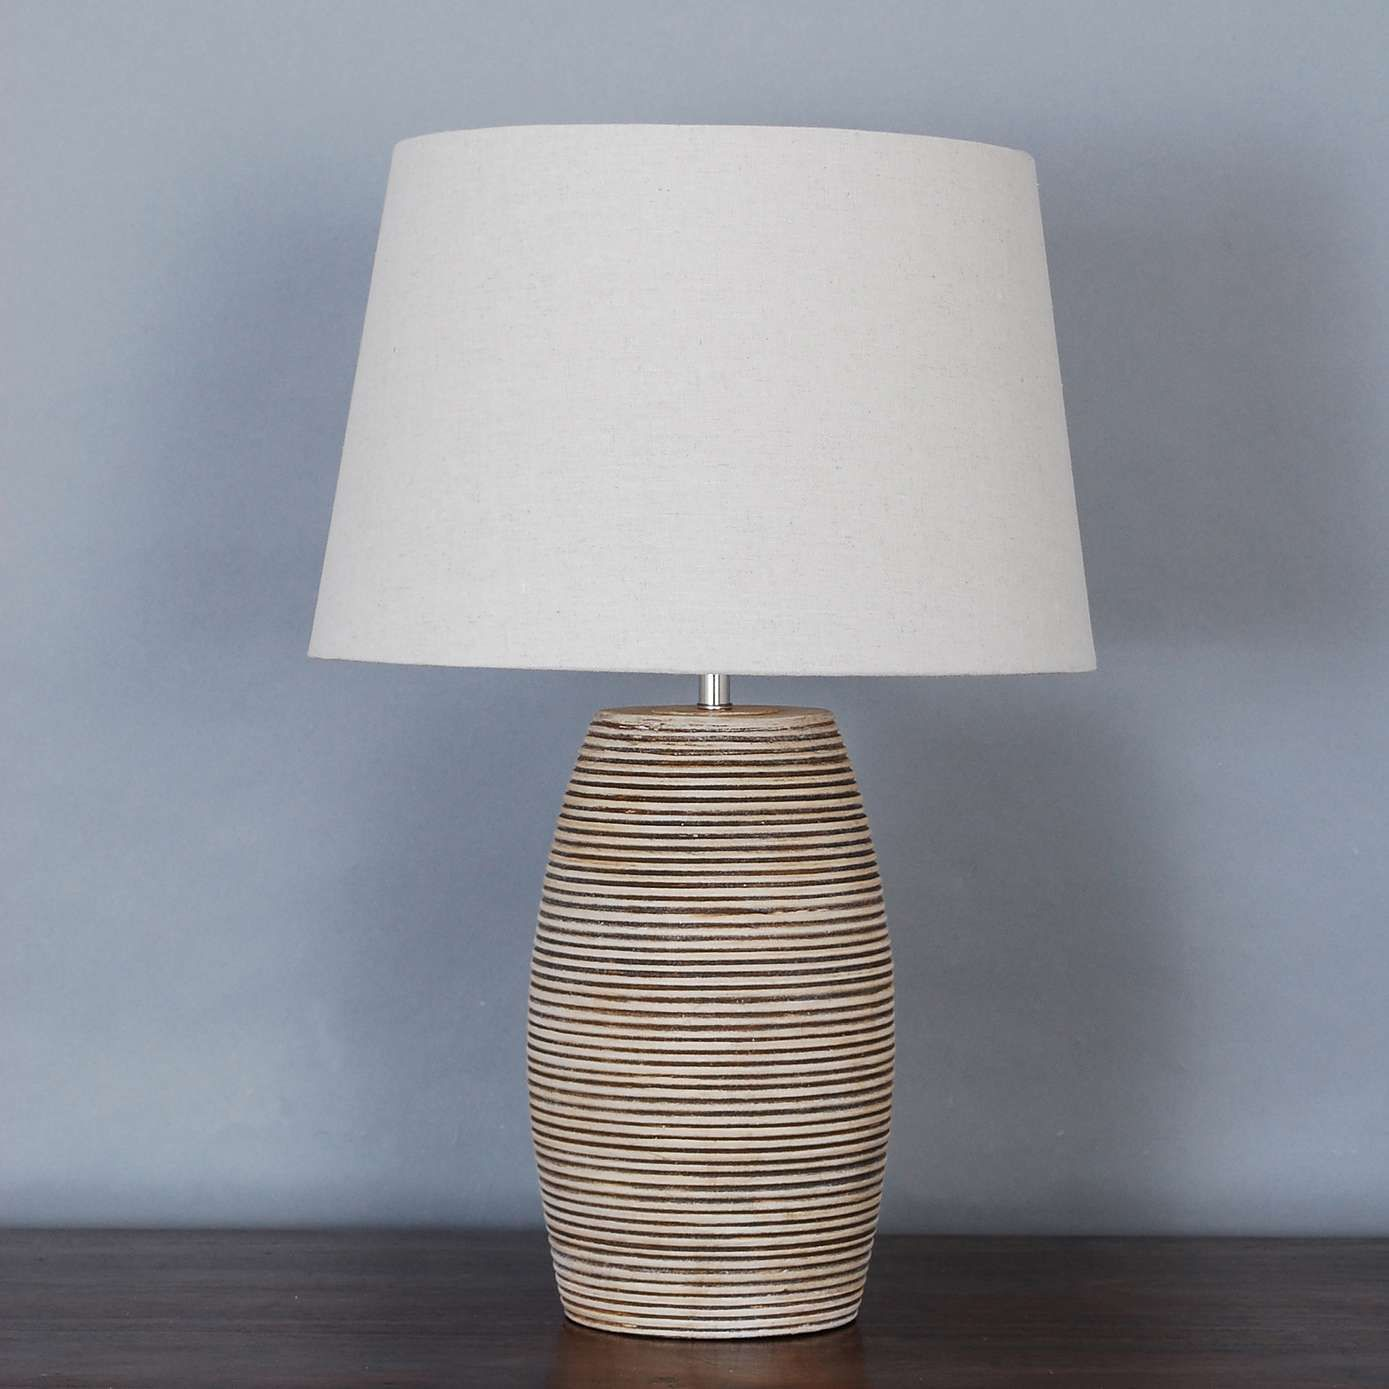 Andora Swirl Table Lamp Lamp Table Lamp Bedside Table Lamps